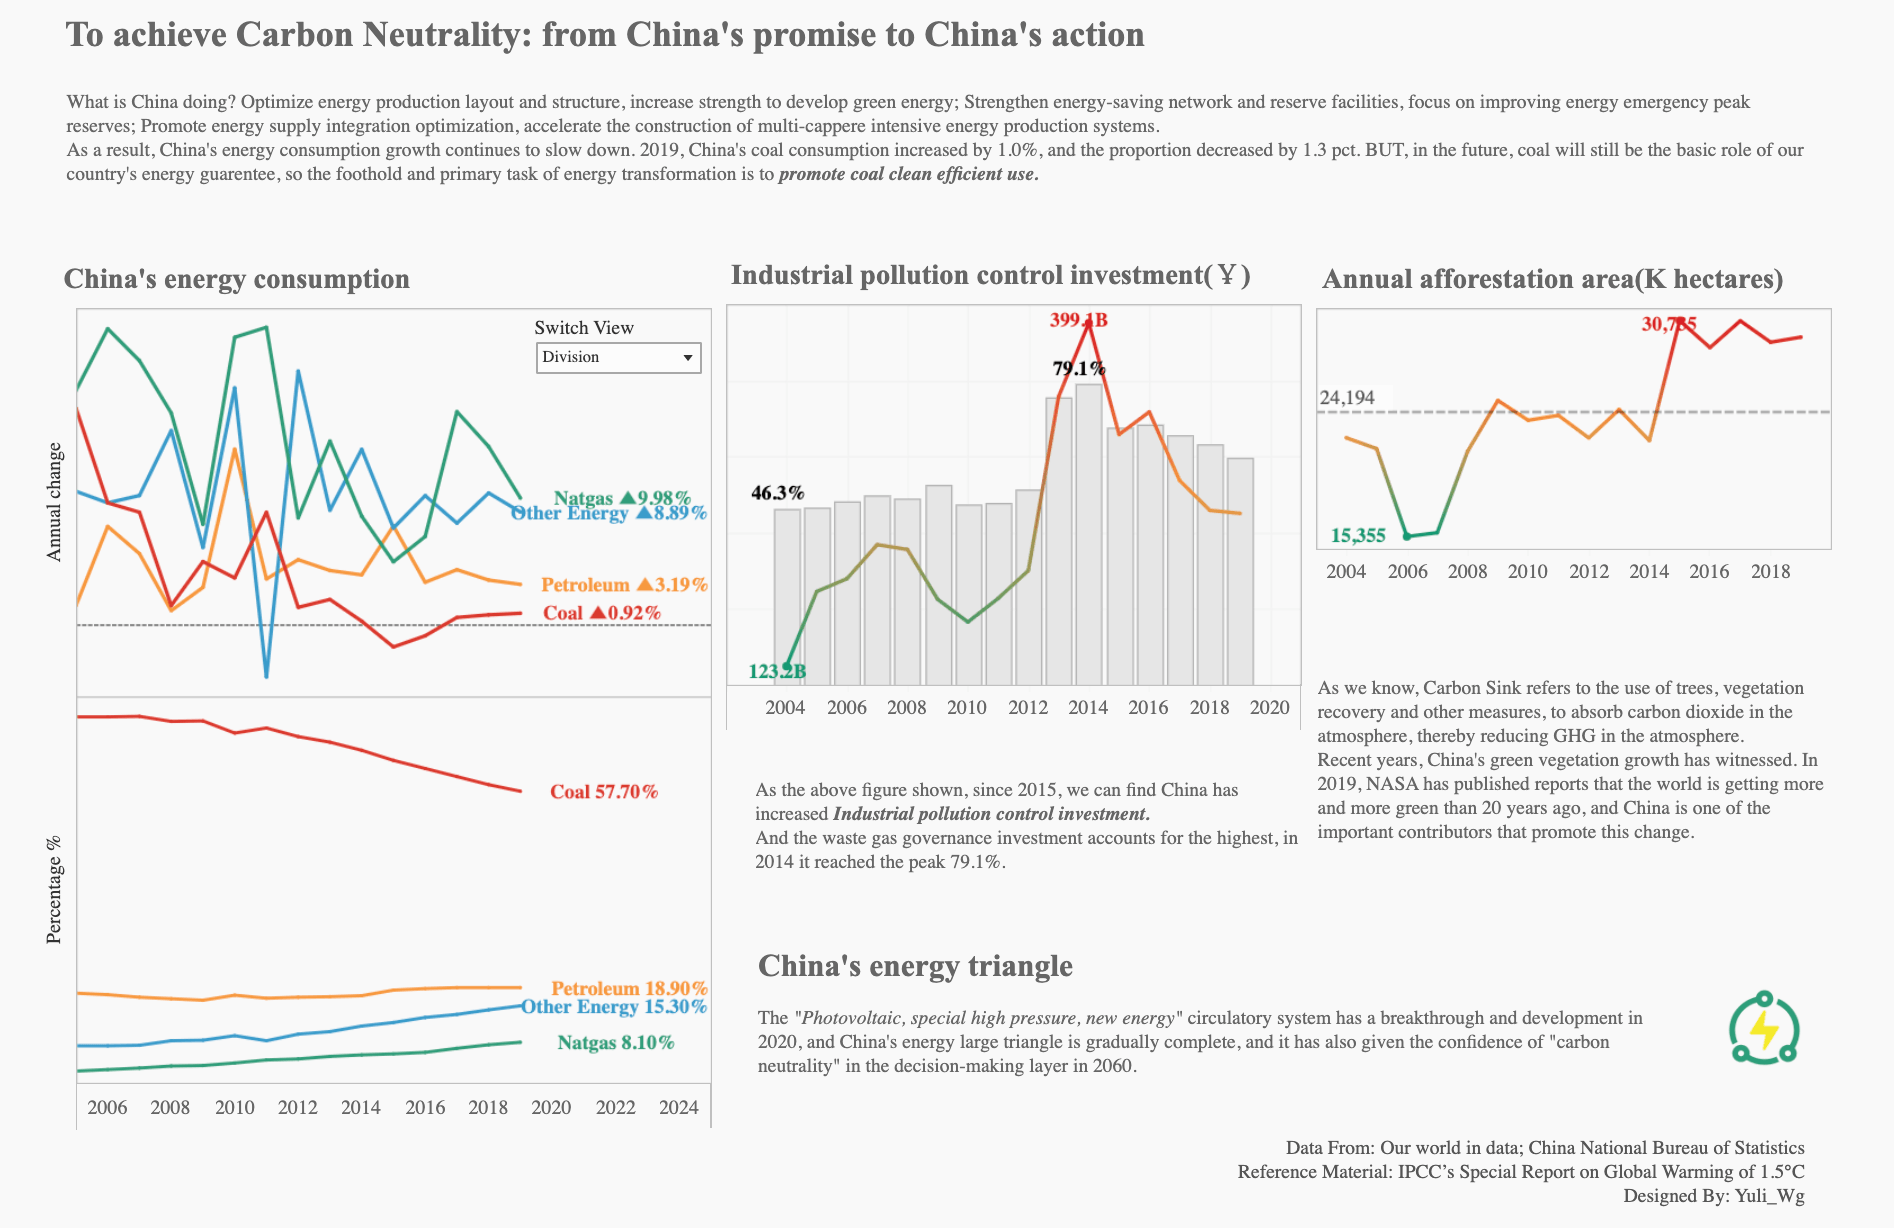 from China's promise to China's action visualization